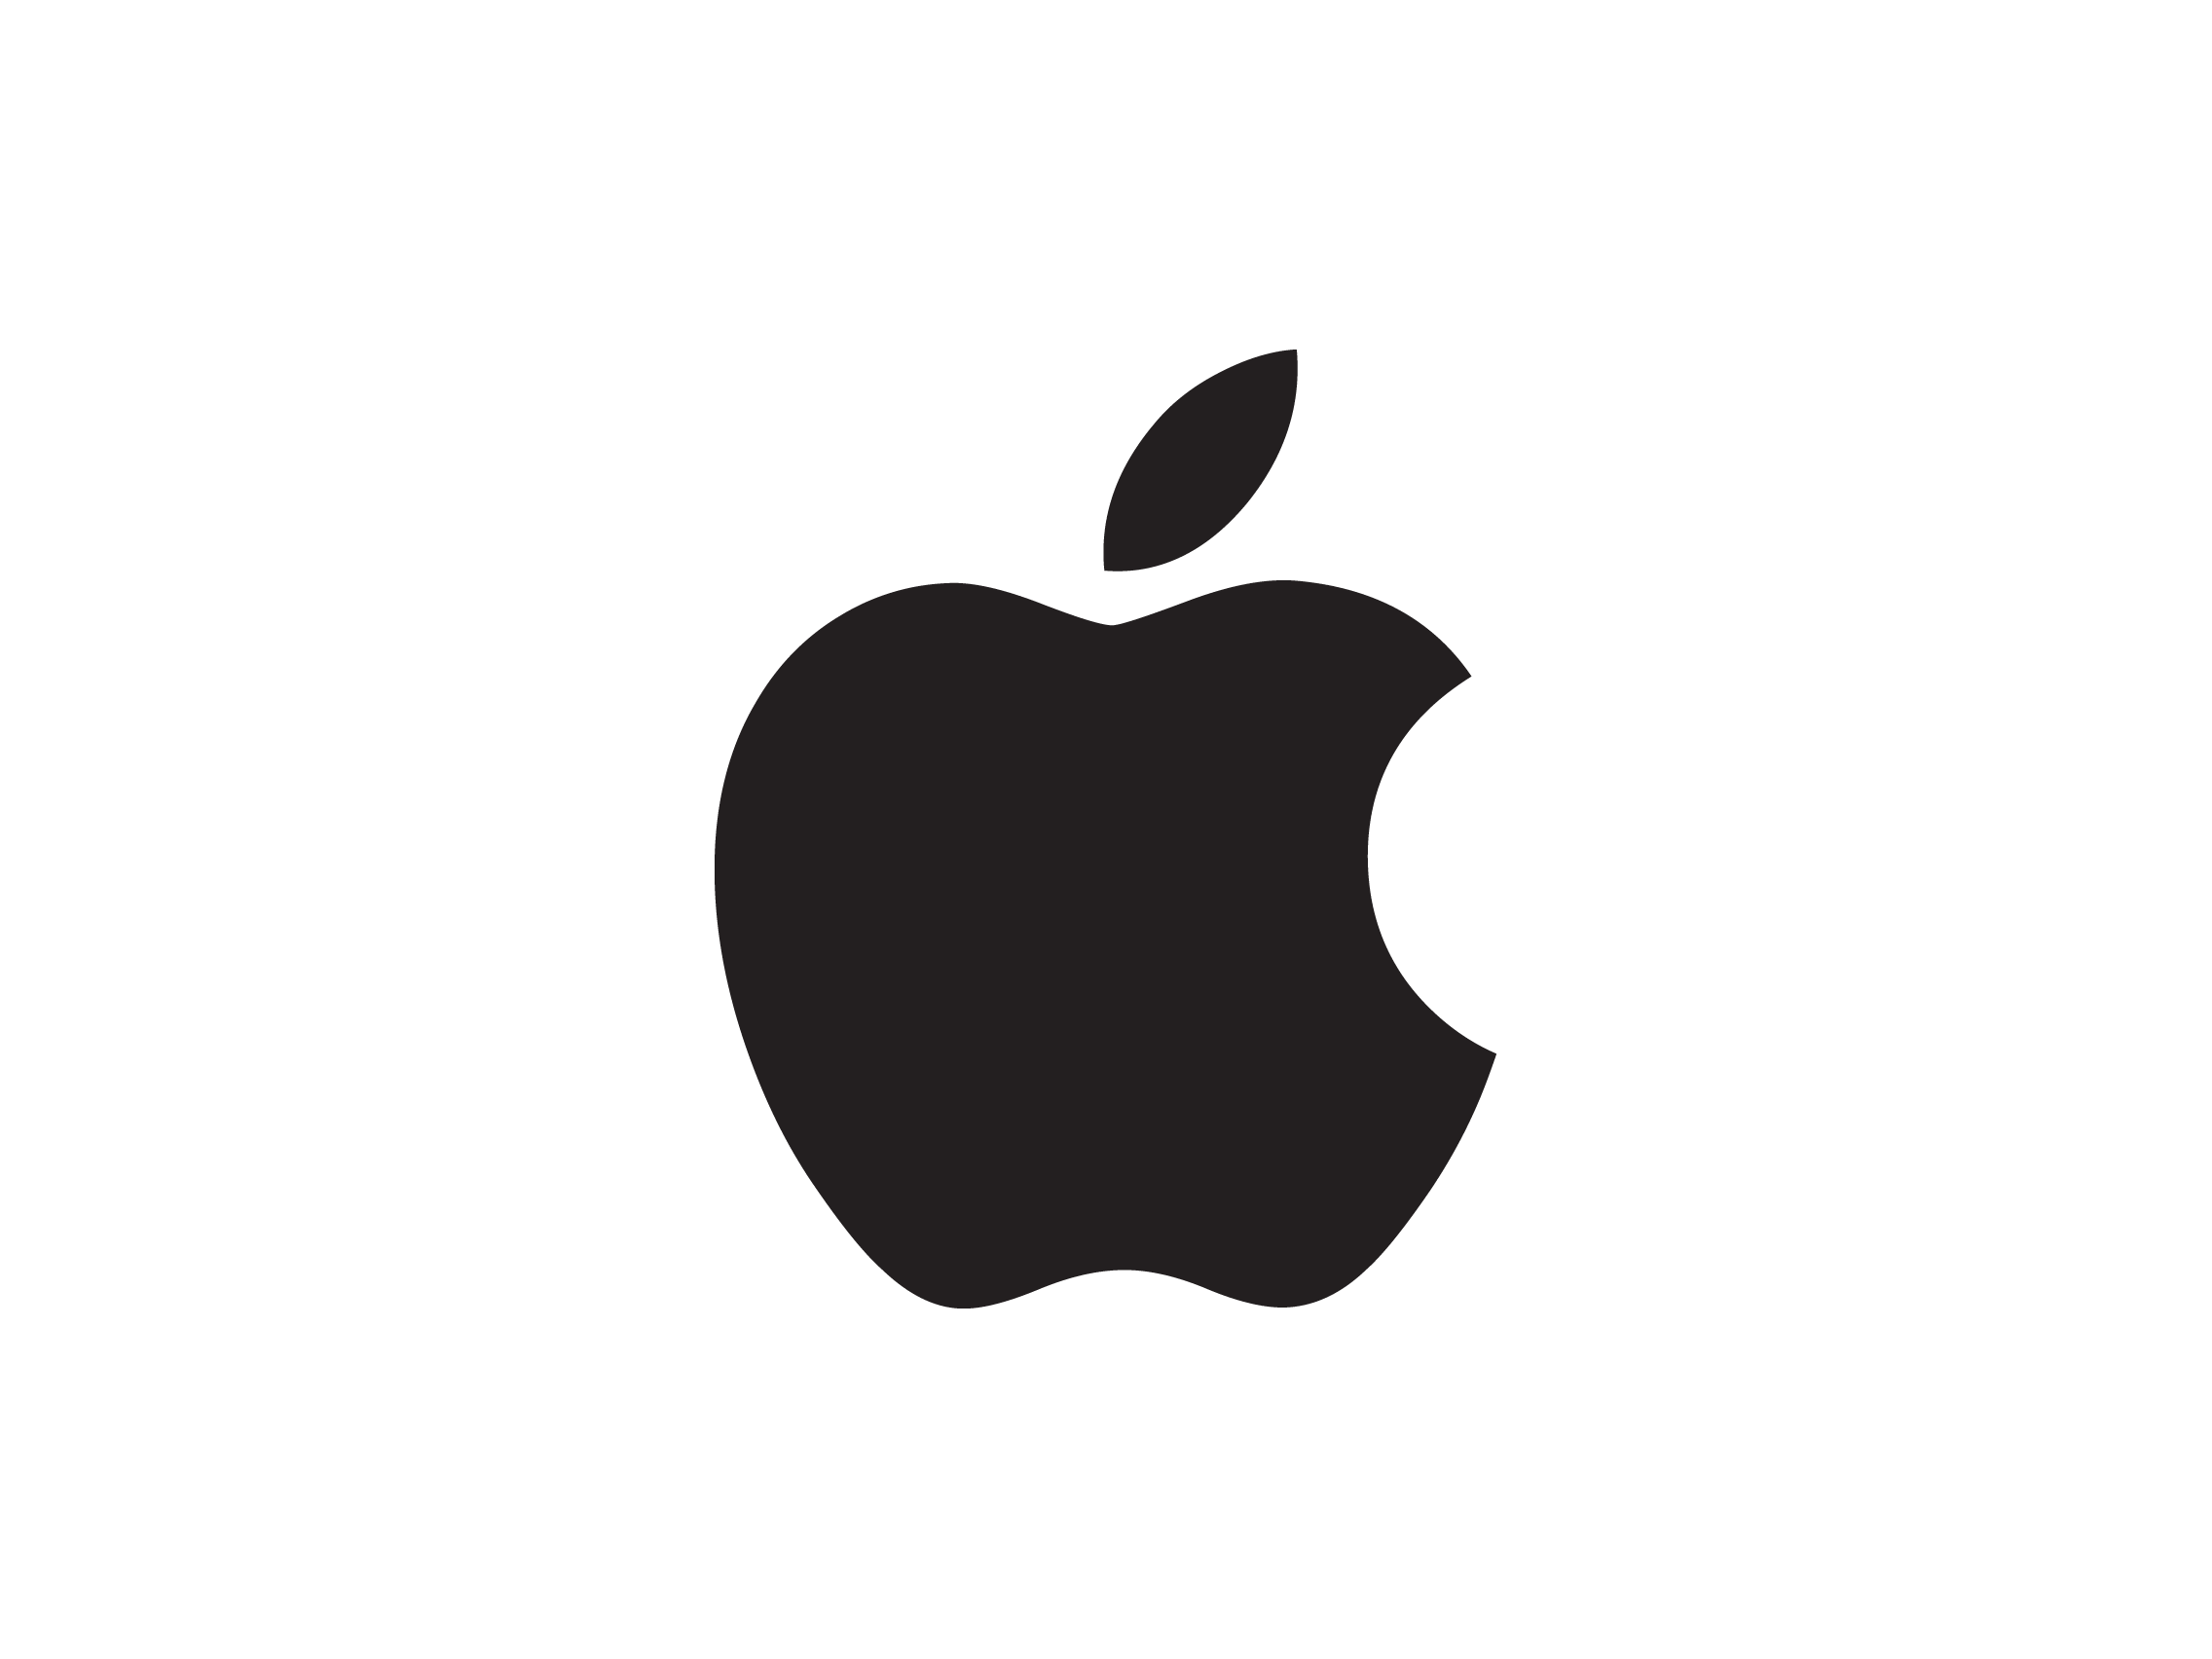 Tips for making a logo for your clothing brand apple logo black biocorpaavc Choice Image